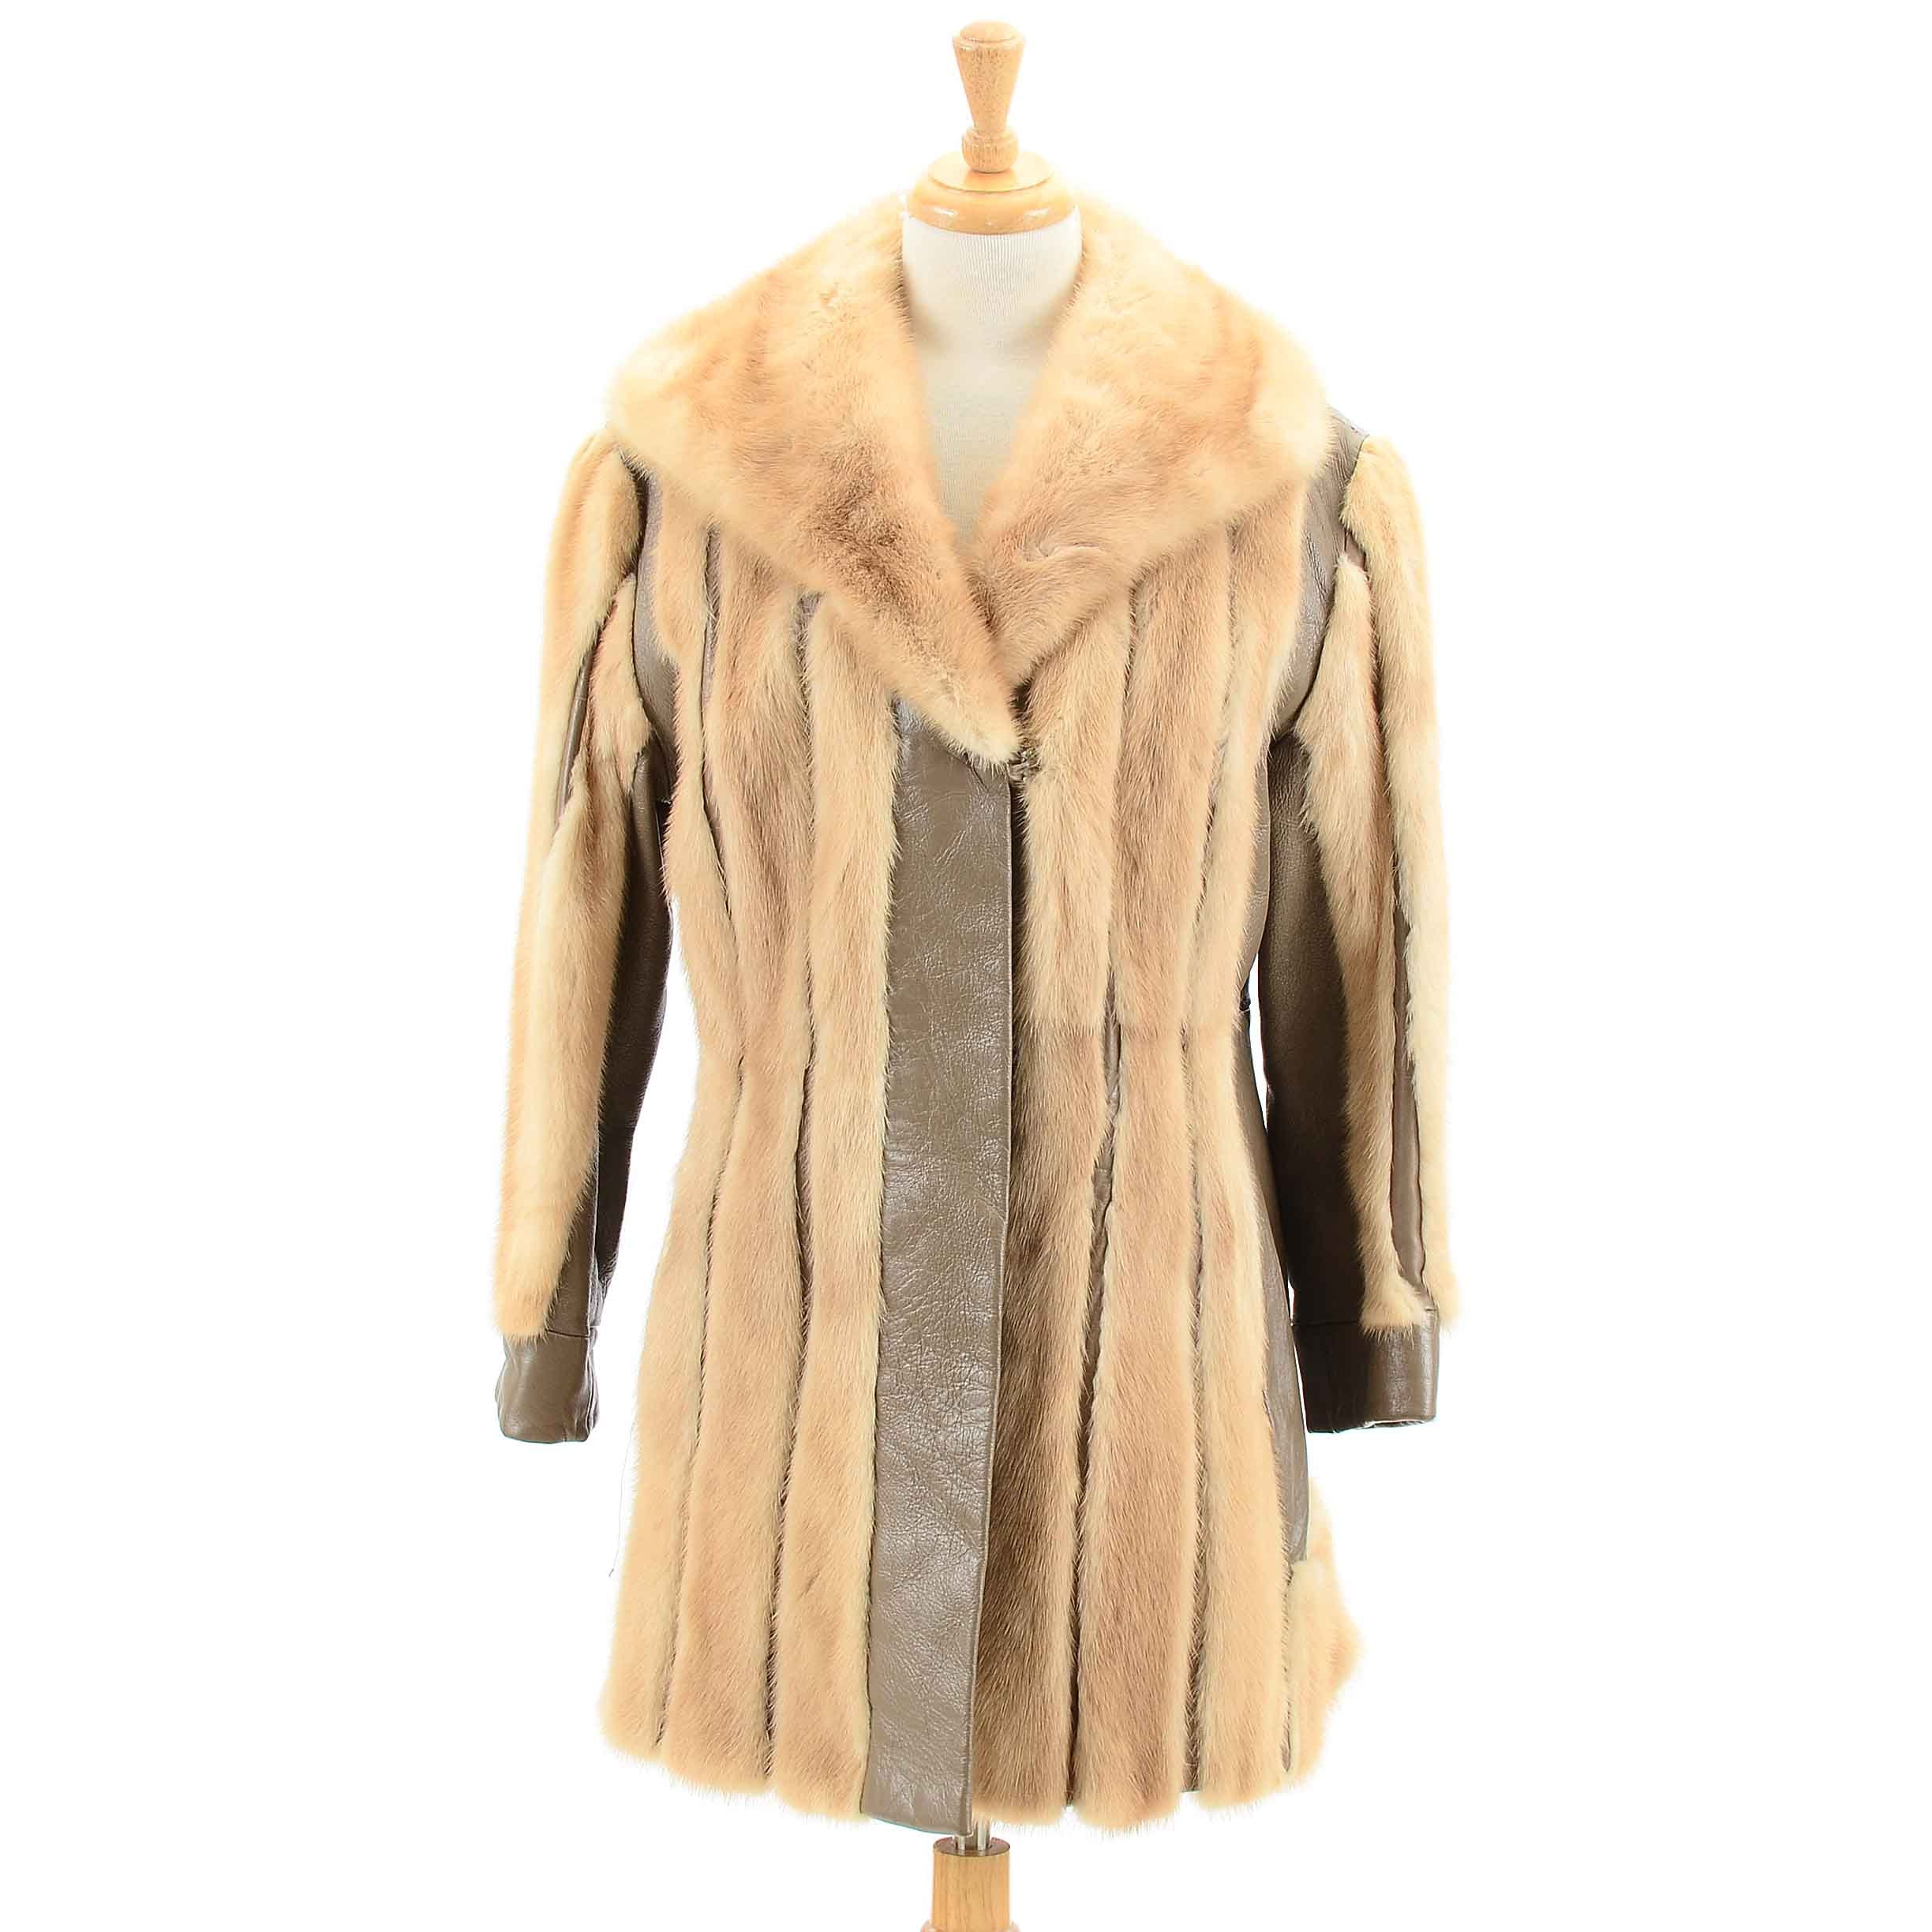 Vintage Mink Fur and Leather Coat